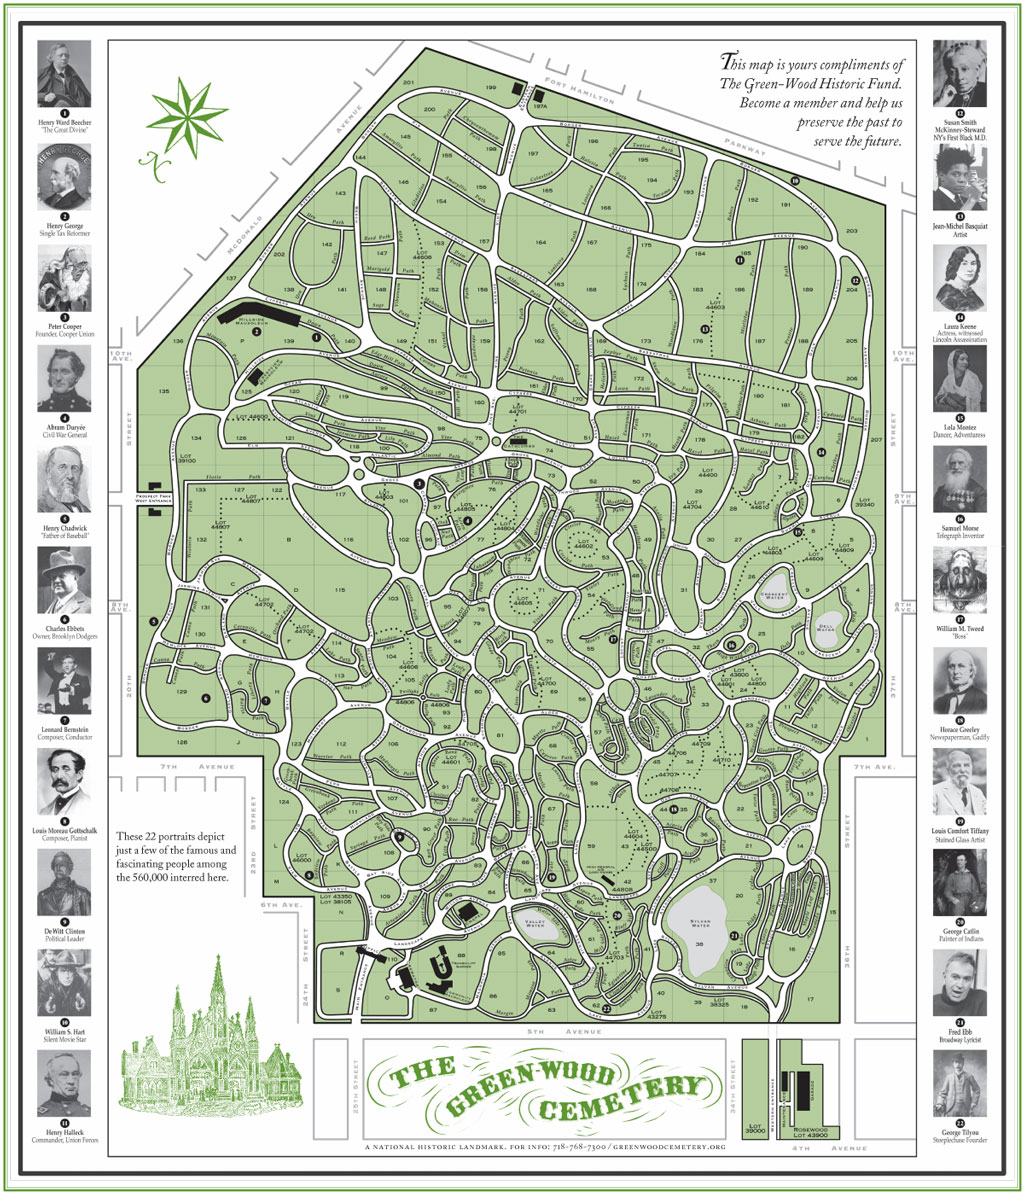 greenwood cemetery interactive map  by brittany bisceglia  - greenwood cemetery interactive map  by brittany bisceglia infographic